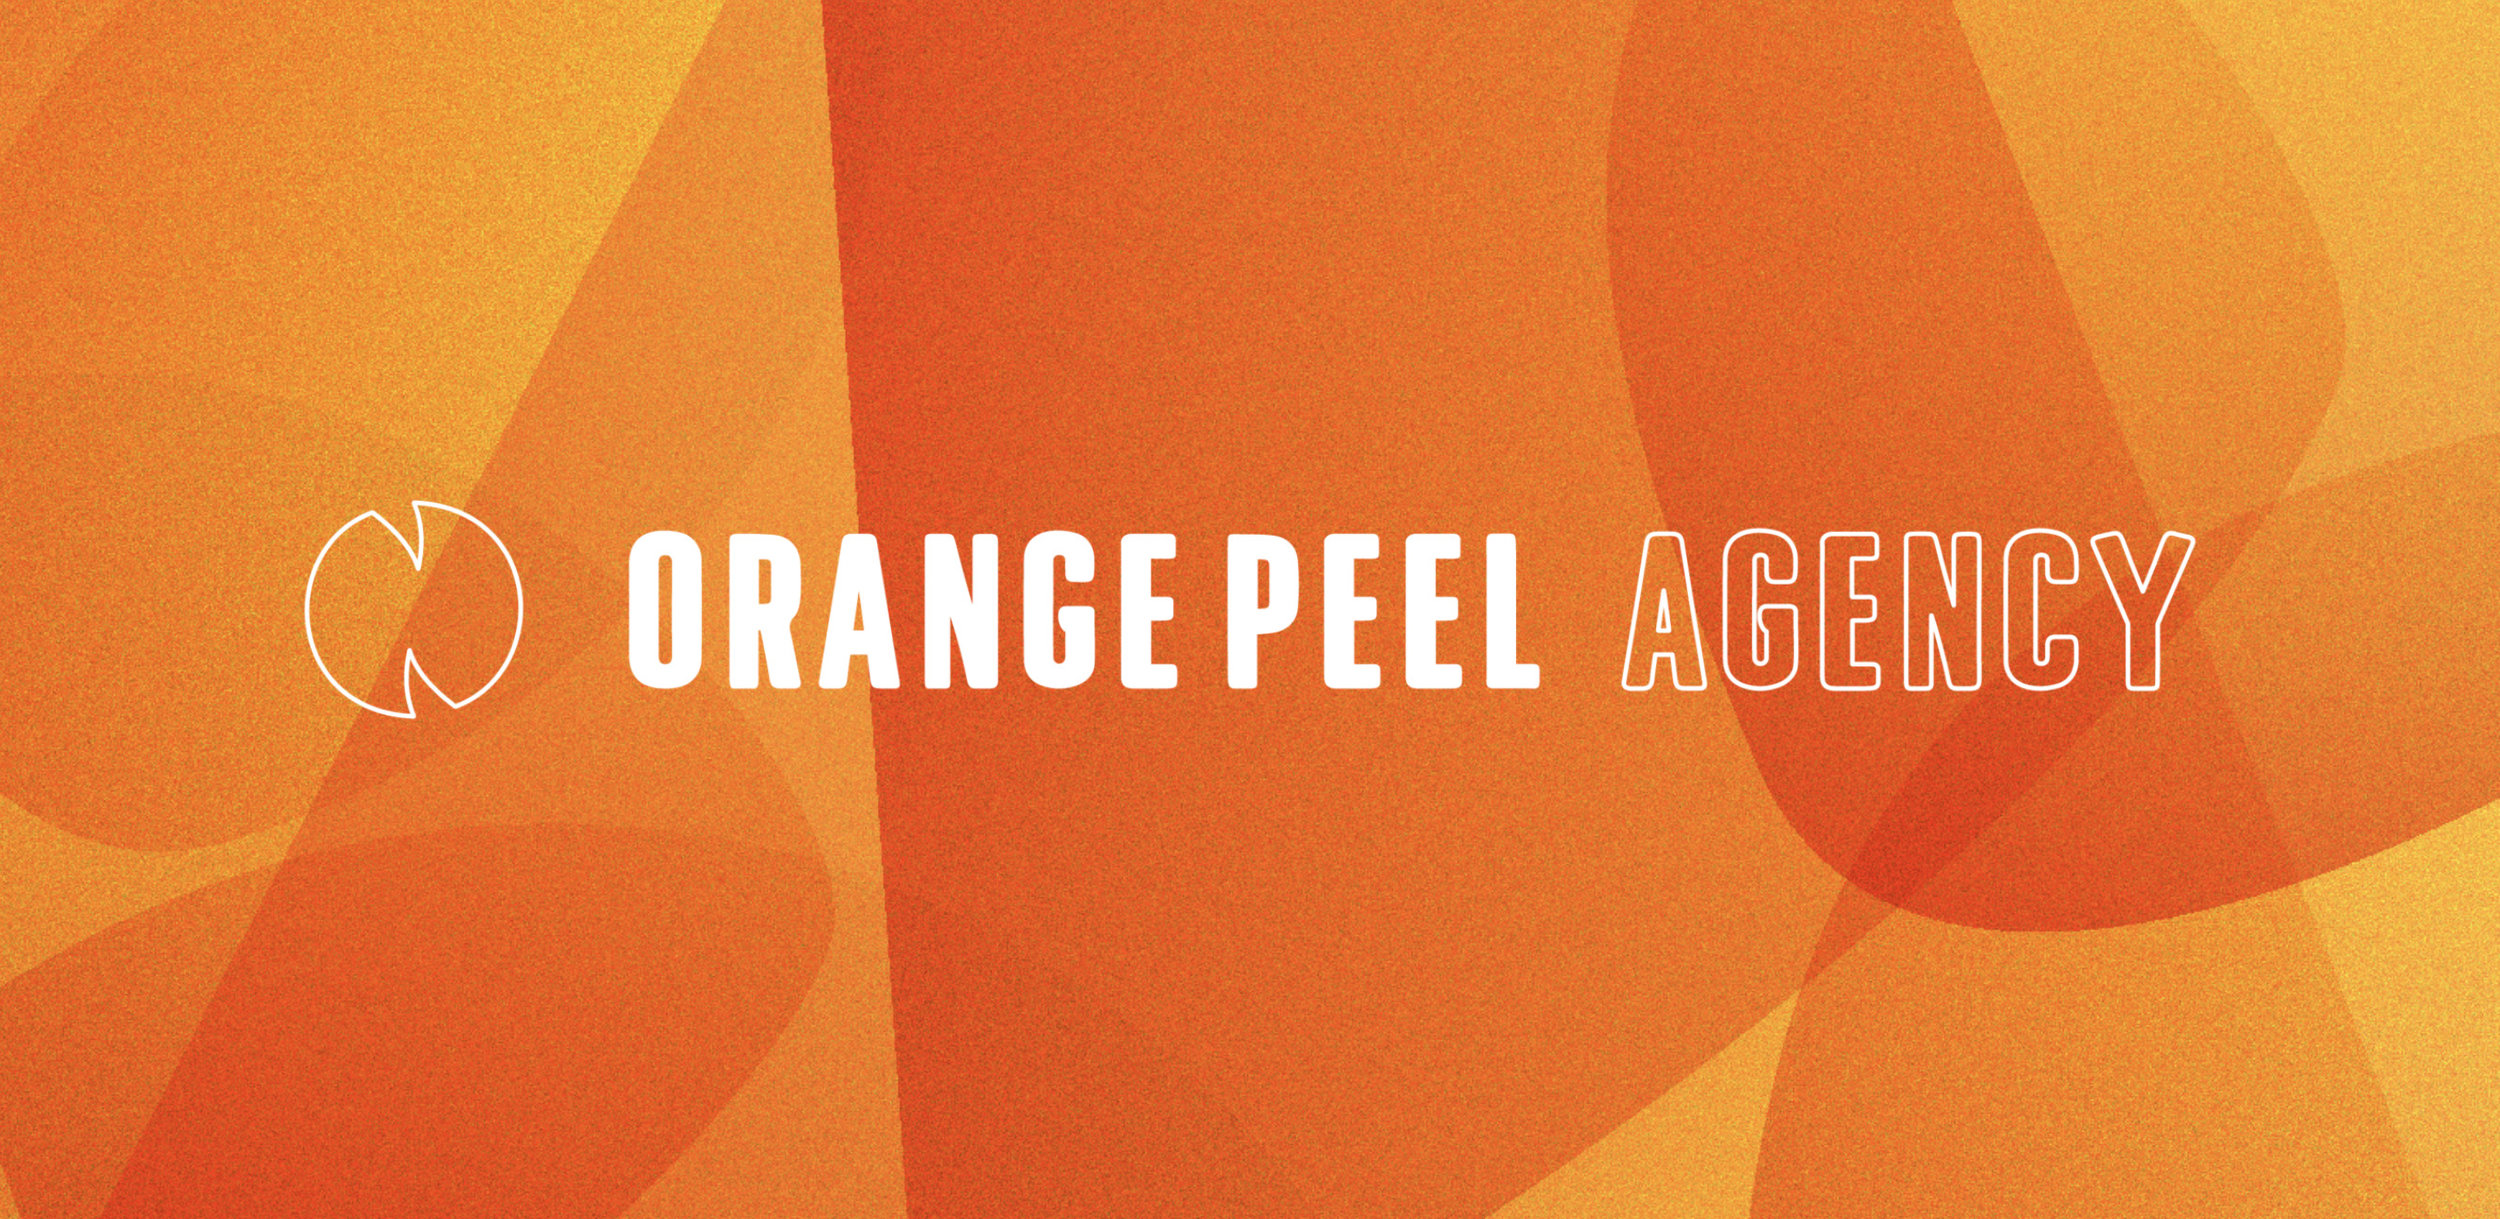 Screenshot_2019-07-23 Orange Peel Agency.jpg